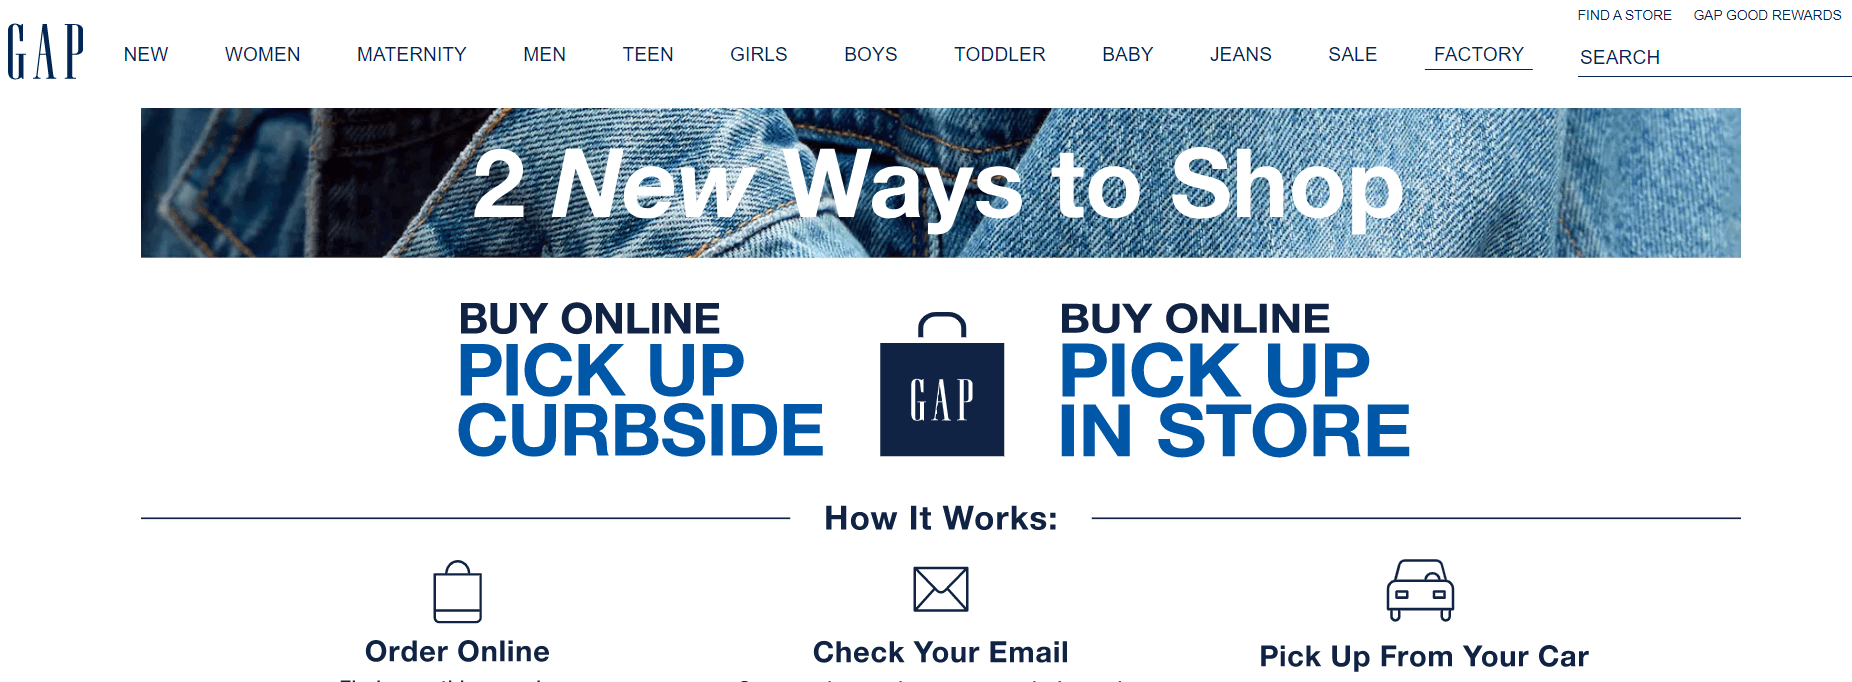 An example of omnichannel marketing from Gap.